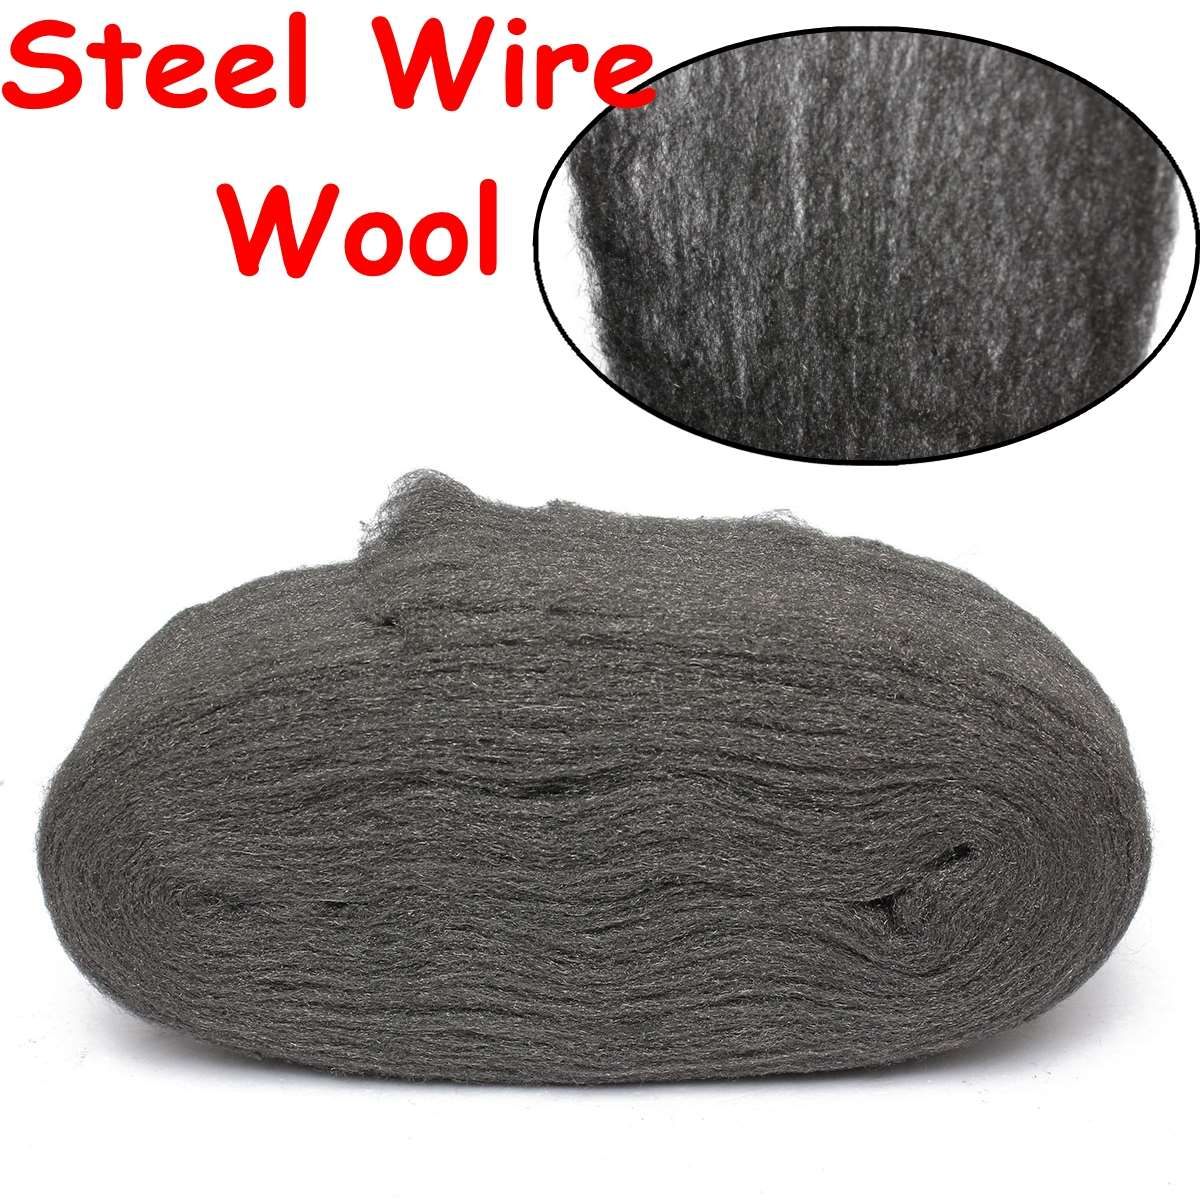 New Steel Wire Wool Grade 0000 33cm For Polishing Cleaning Removing Remover Non Crumble(China (Mainland))